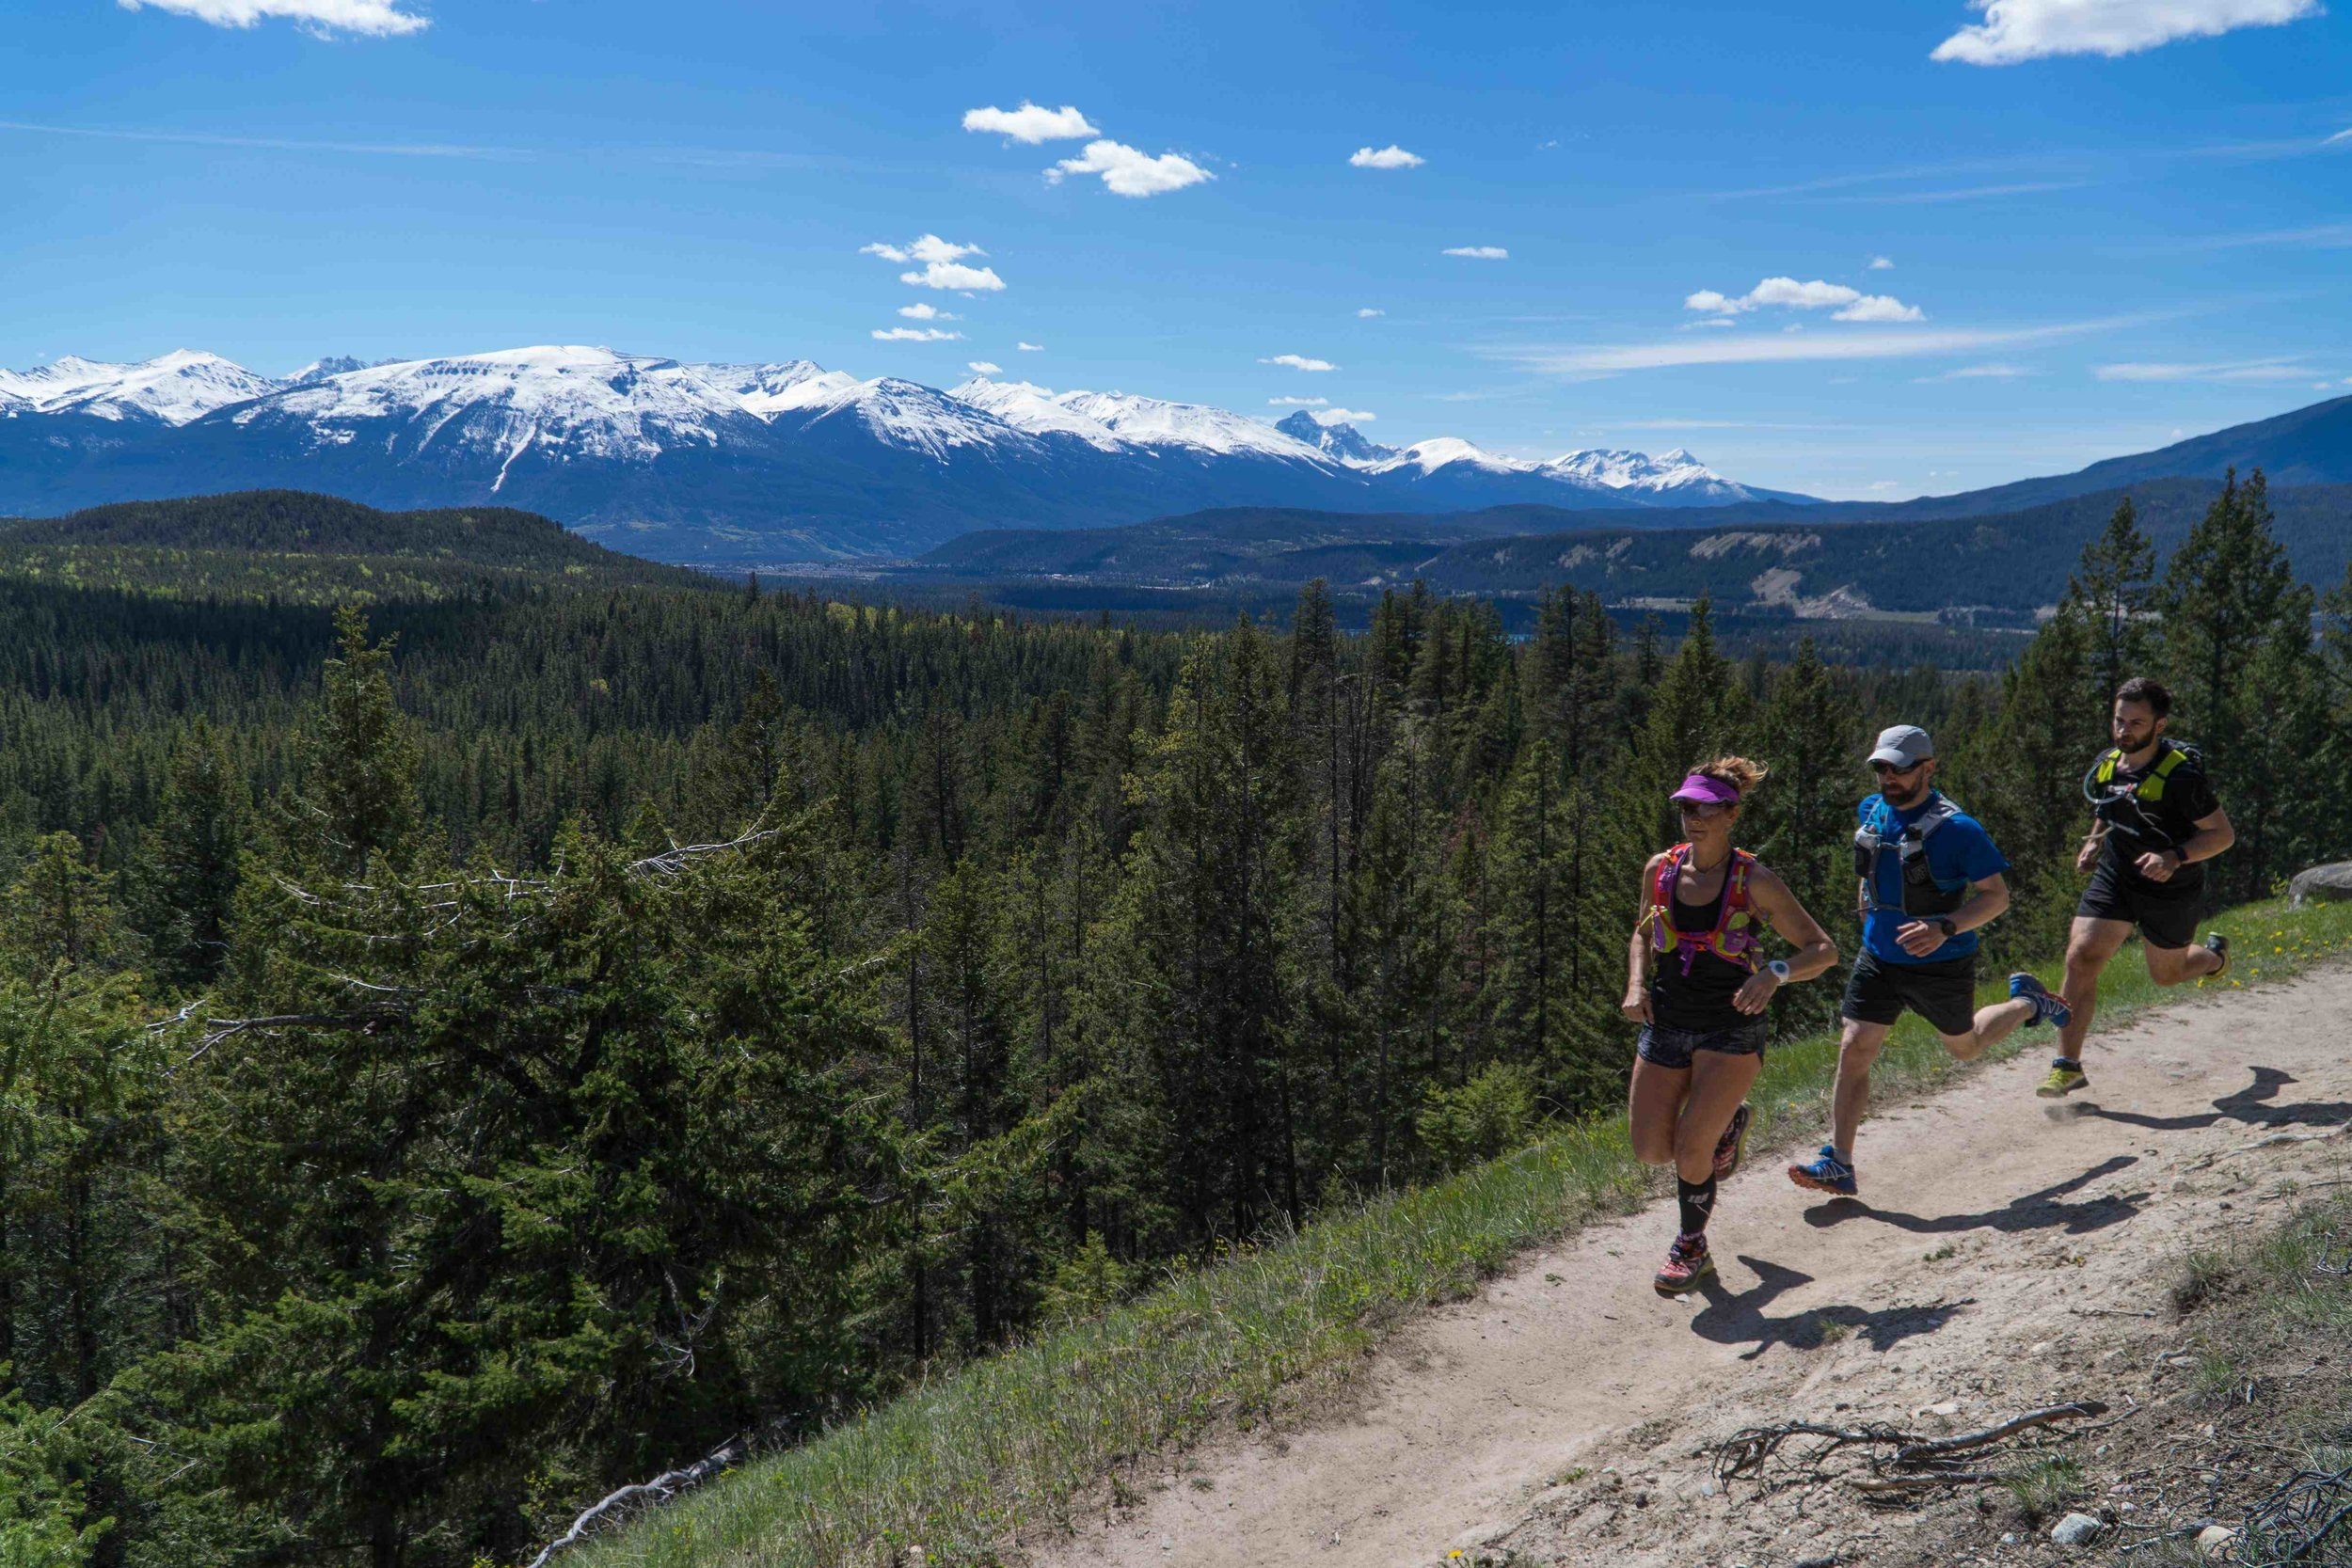 NEW 2019 - Our new adventures for this year have us picking up the pace and running across the amazing trails of Jasper National Park. If you always wanted to try Trail Running book with us for anything from a short jaunt on the trails close to town to a longer run through the wilderness! We will still stop for photos and learning!